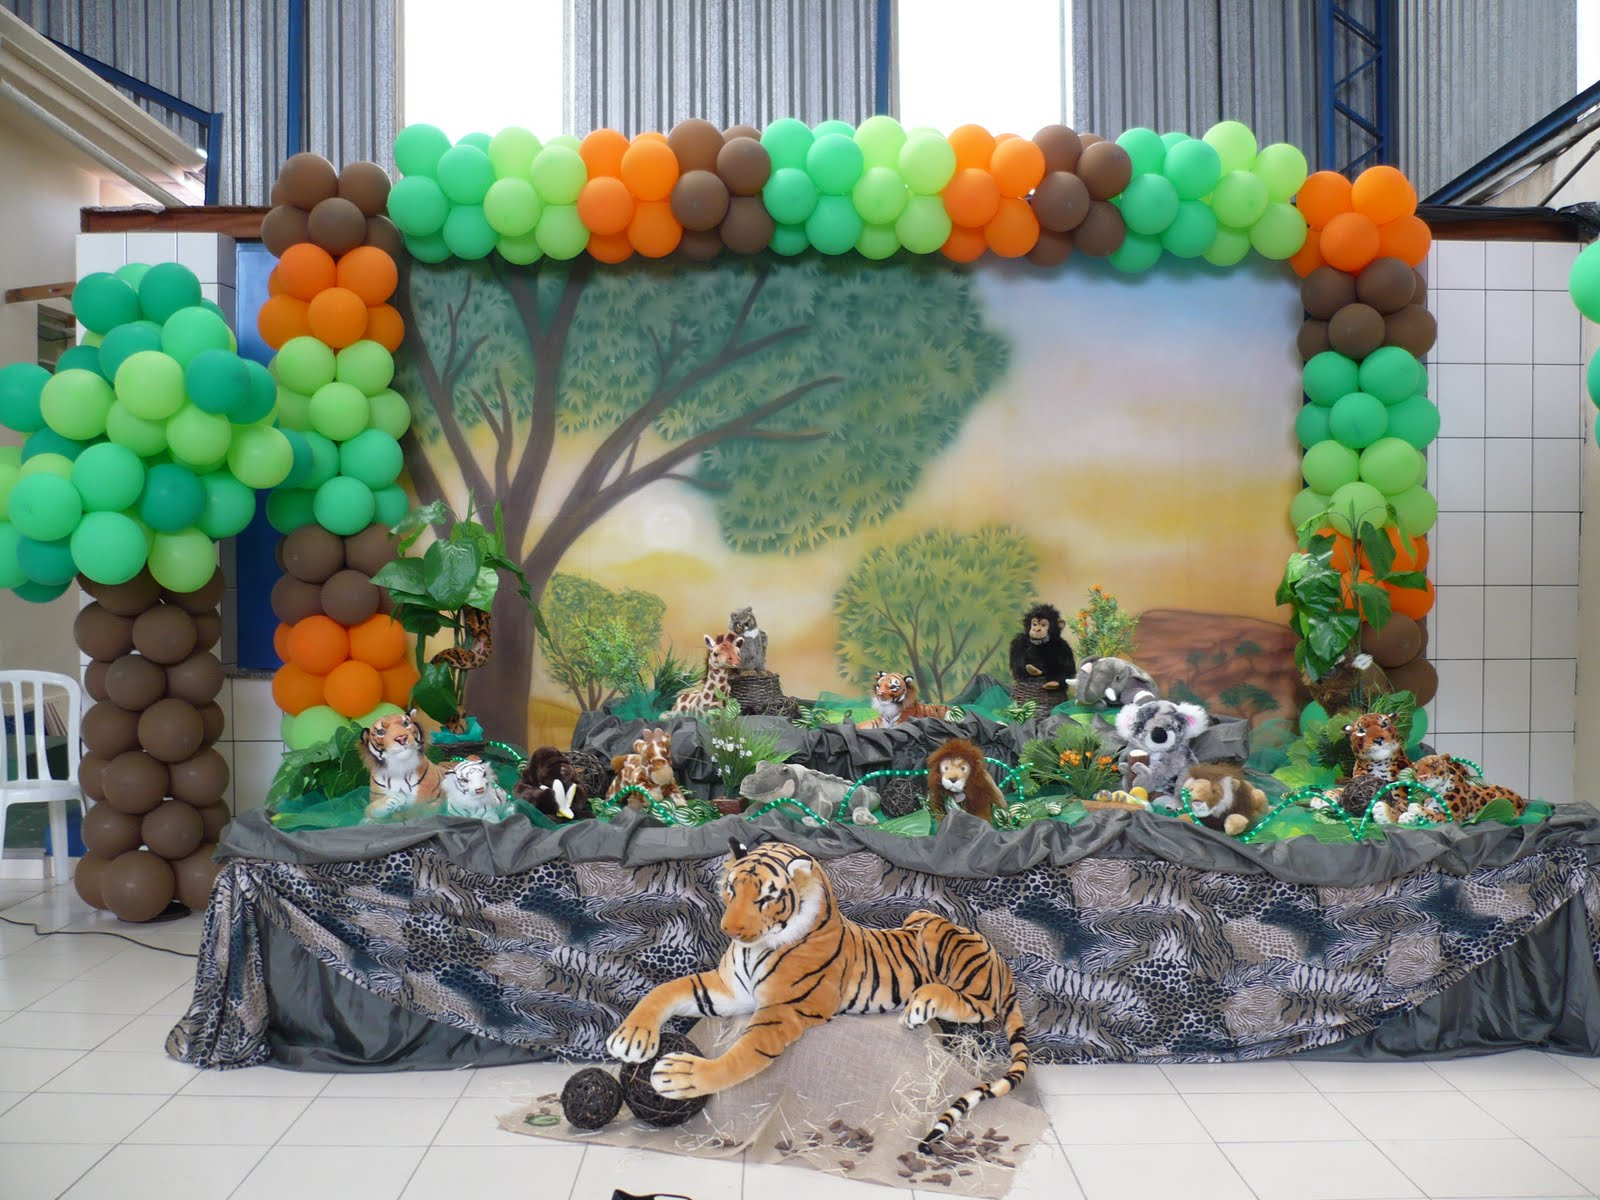 decoracao festa safari : decoracao festa safari:Hollybaby Decorações de Festas Infantis: Safari / Floresta